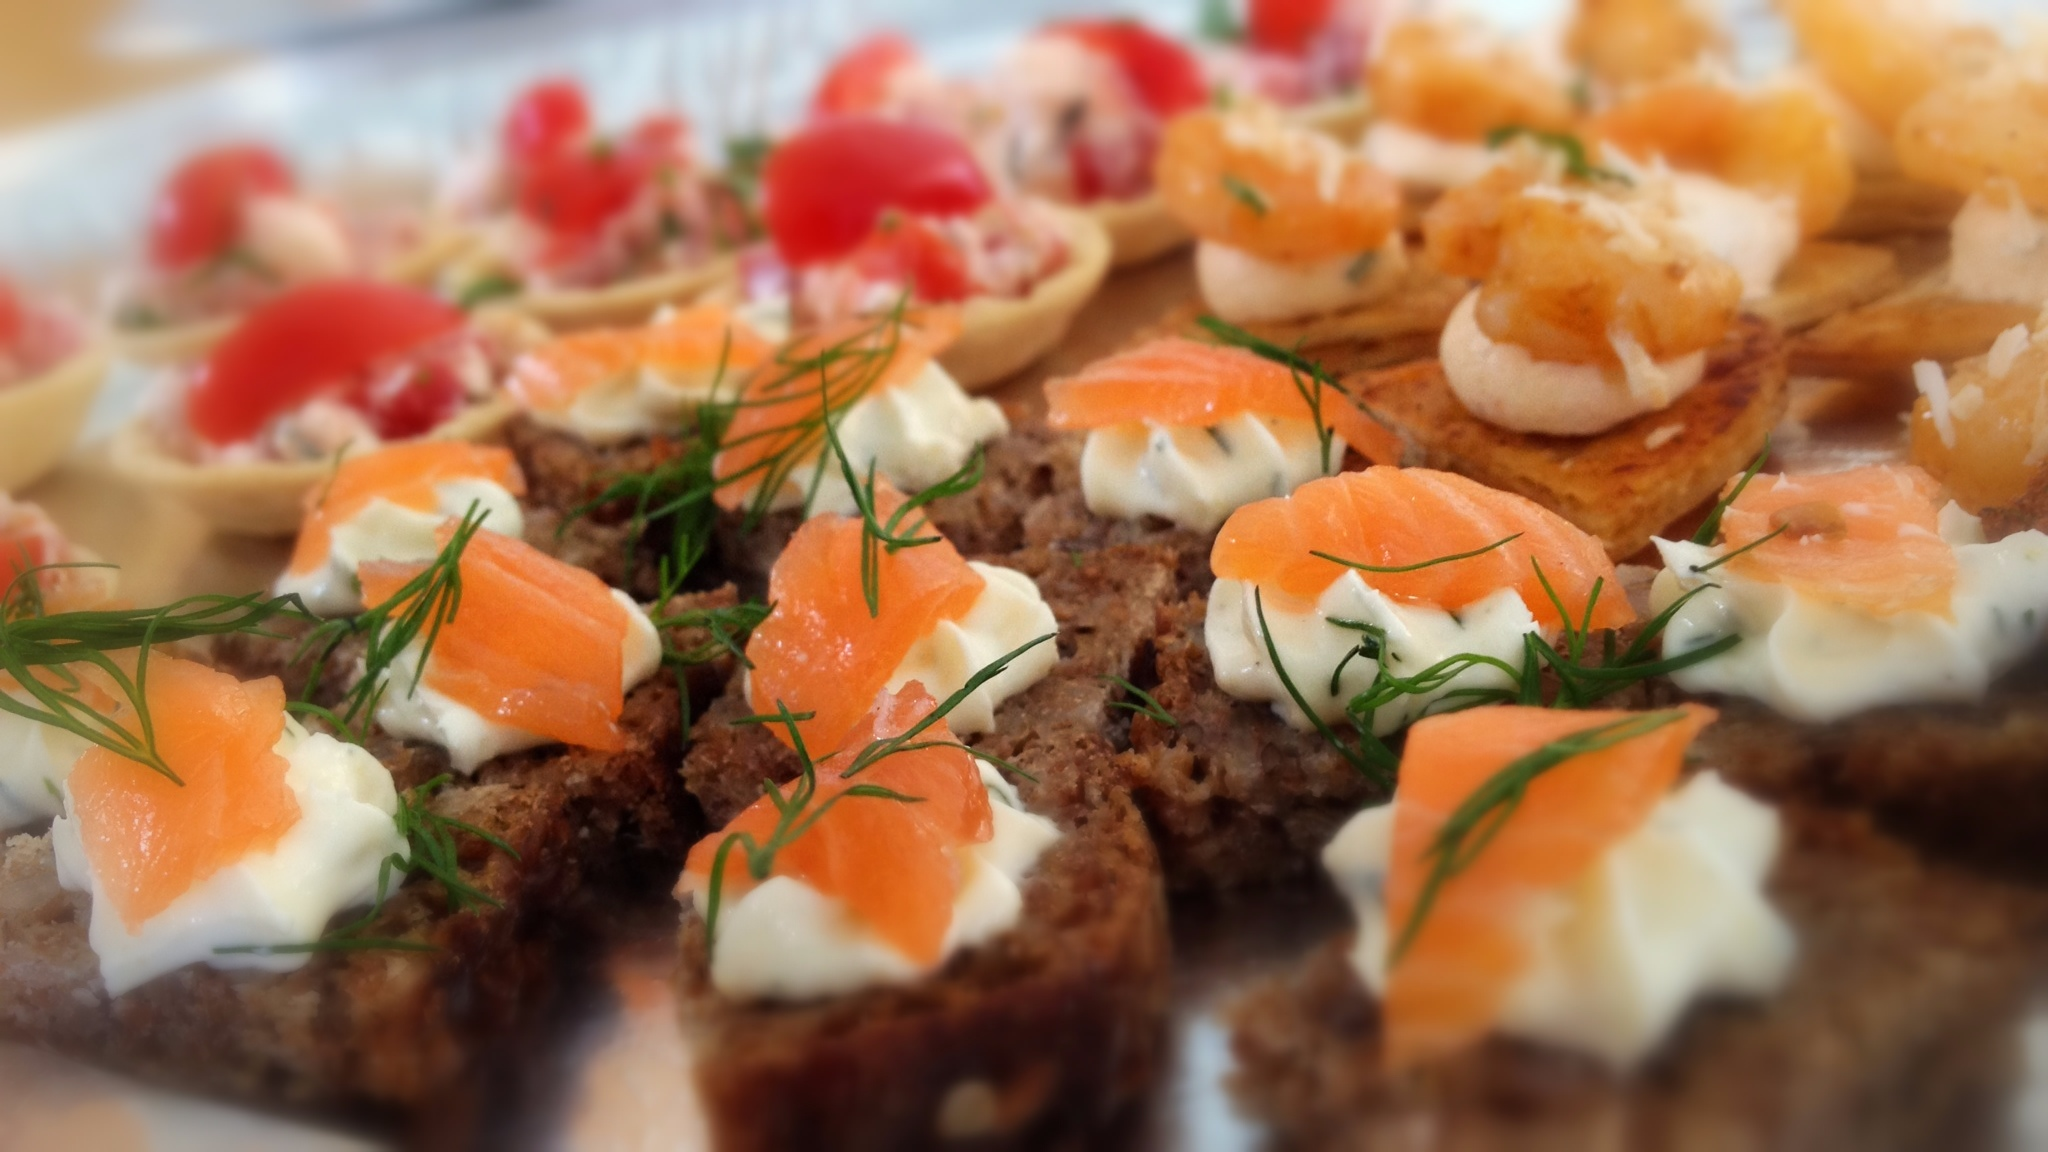 Canape and bbq 39 s for corporate catering made by mary for Canape catering